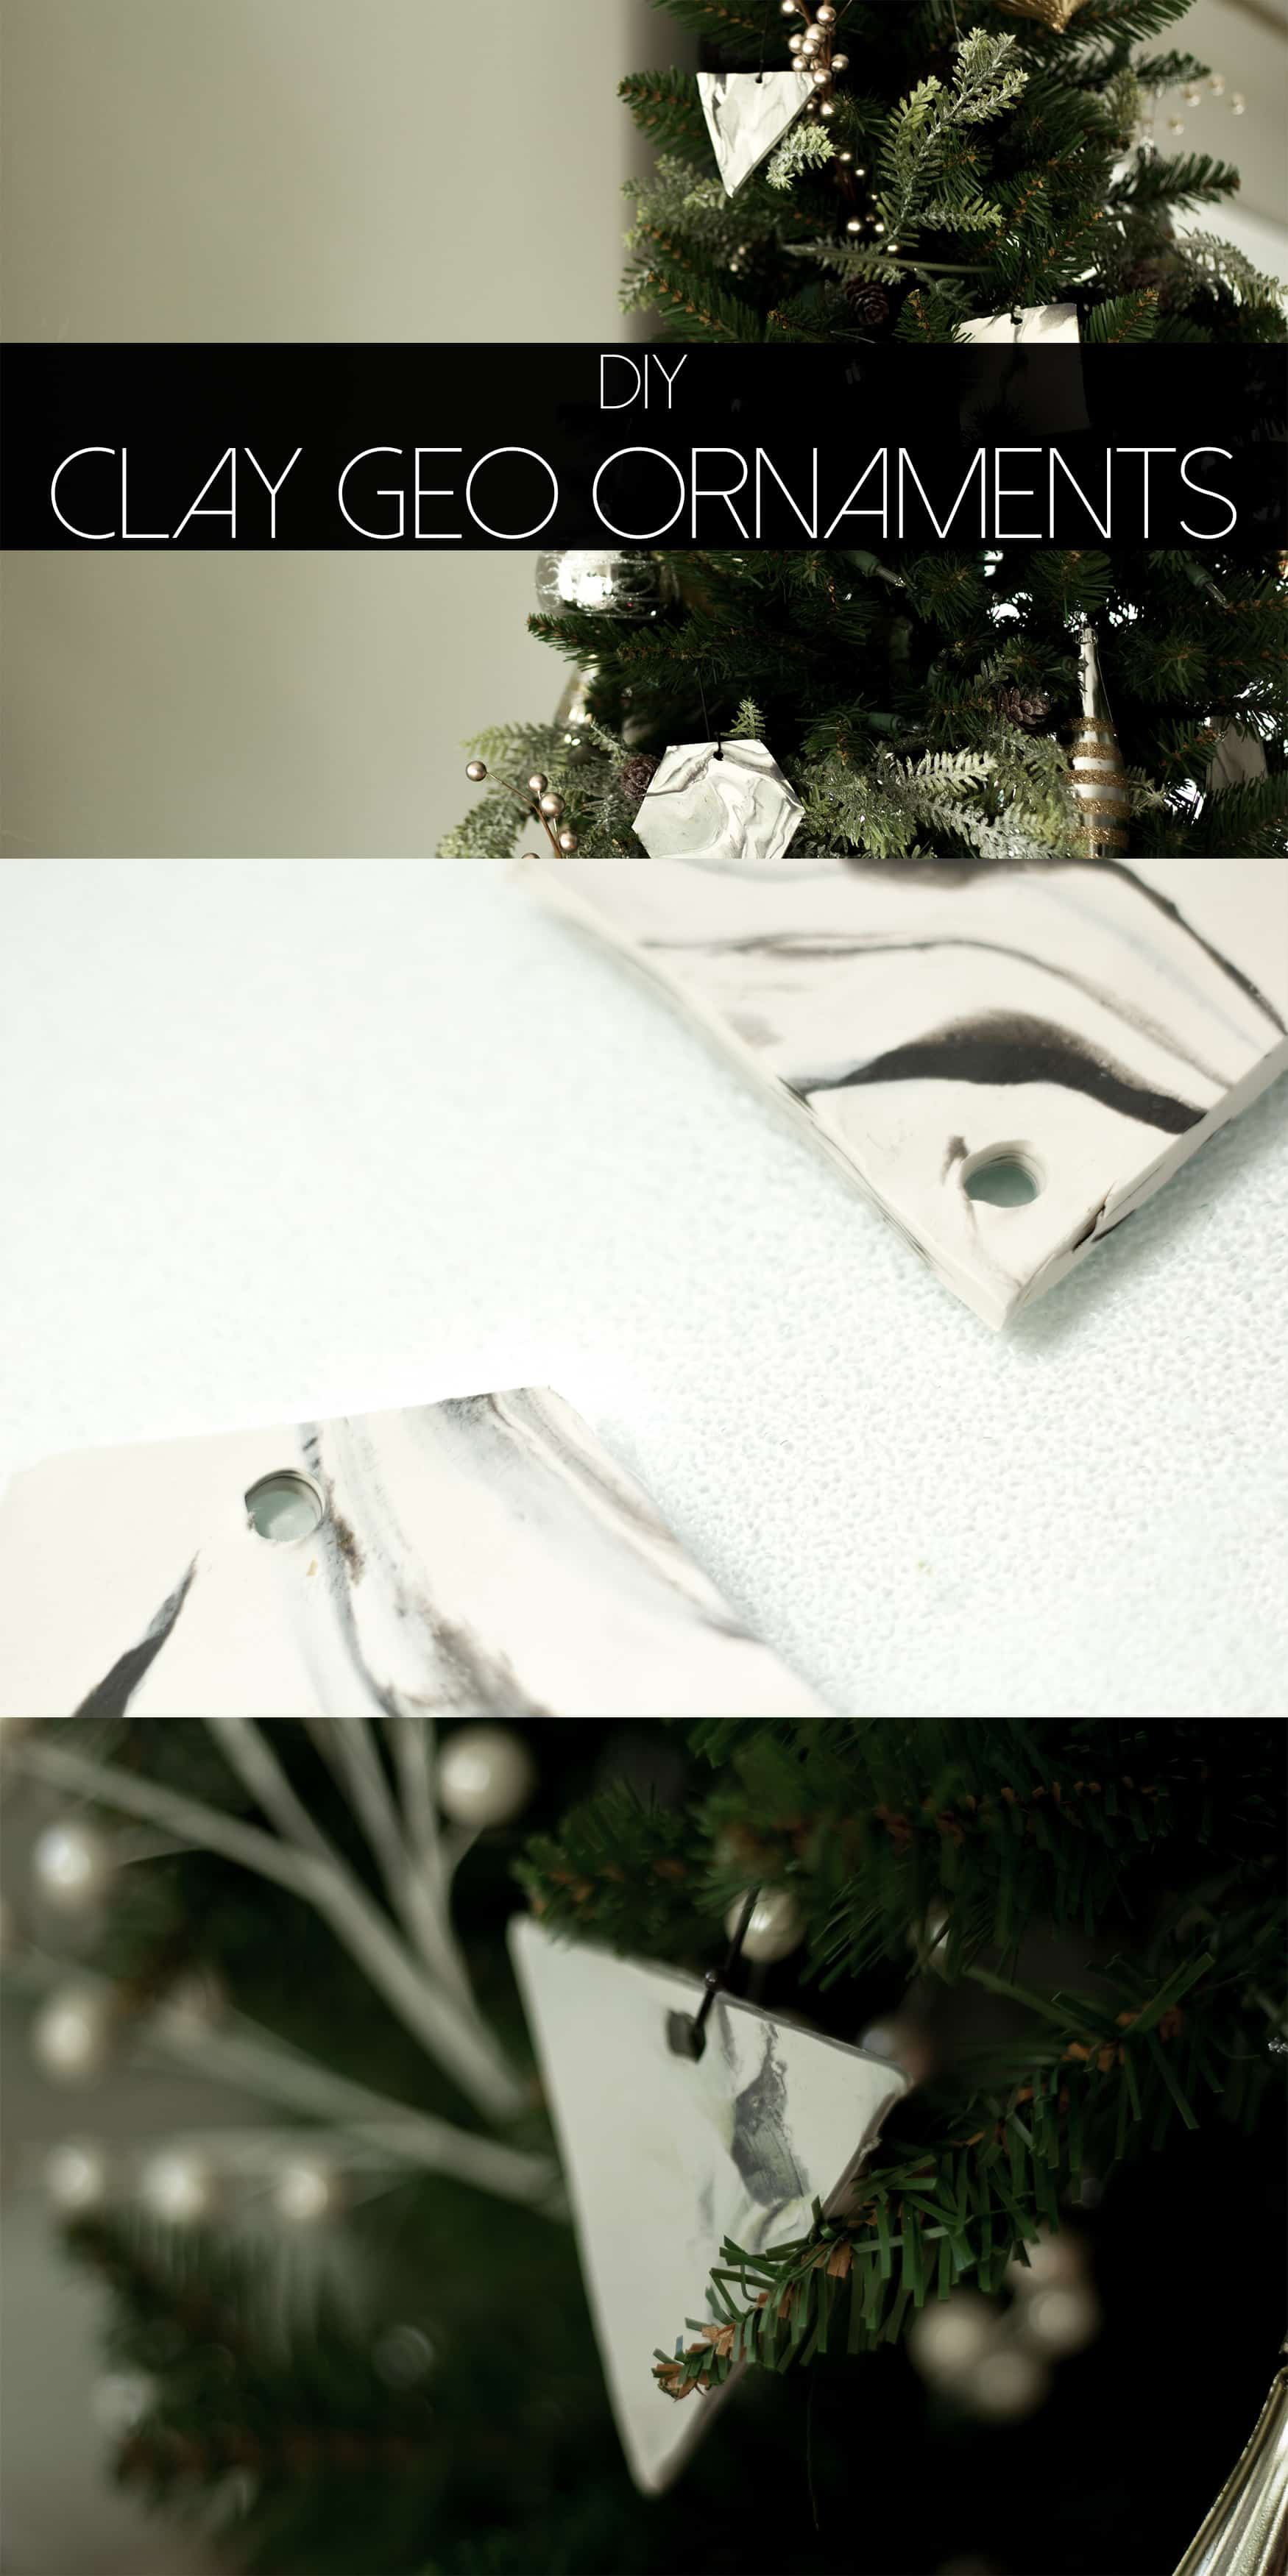 Such a pretty little ornament DIY with clay.